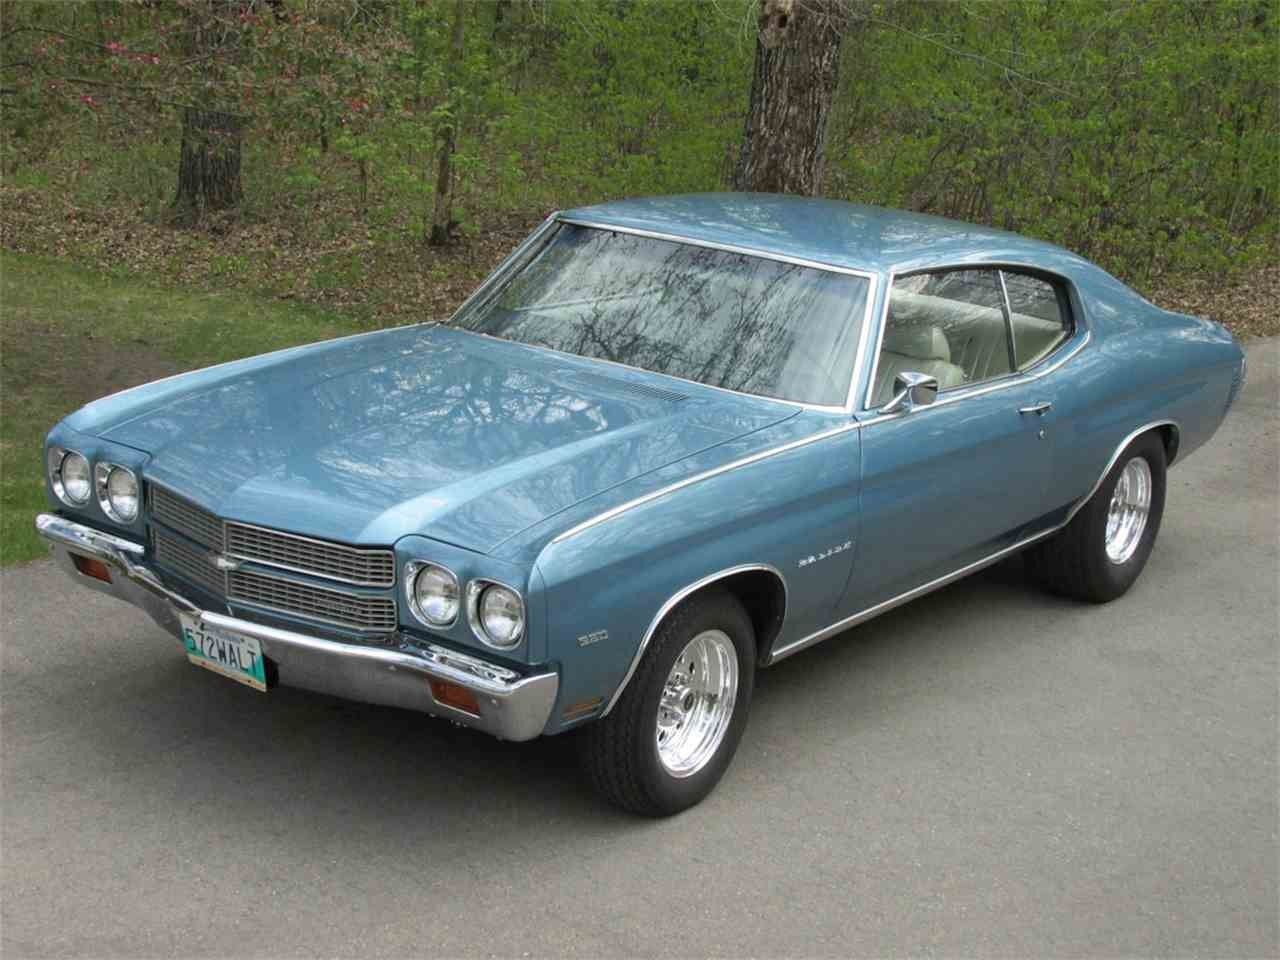 1970 Chevelle Malibu Chevy Muscle Cars Muscle Cars Camaro Muscle Cars